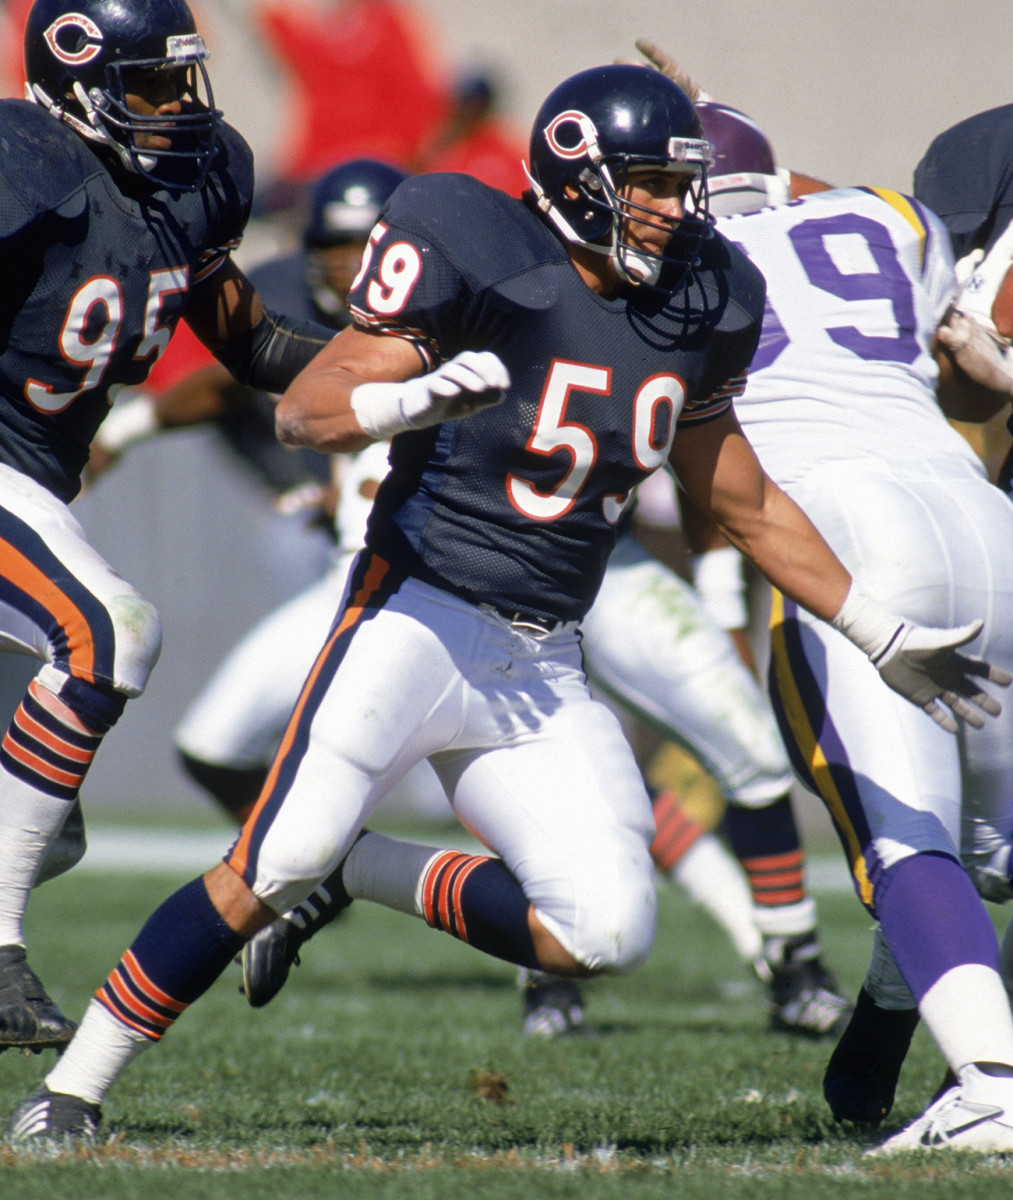 Rivera won a Super Bowl ring under Ditka as a backup linebacker on the legendary '85 Bears team. He would later become a starter.